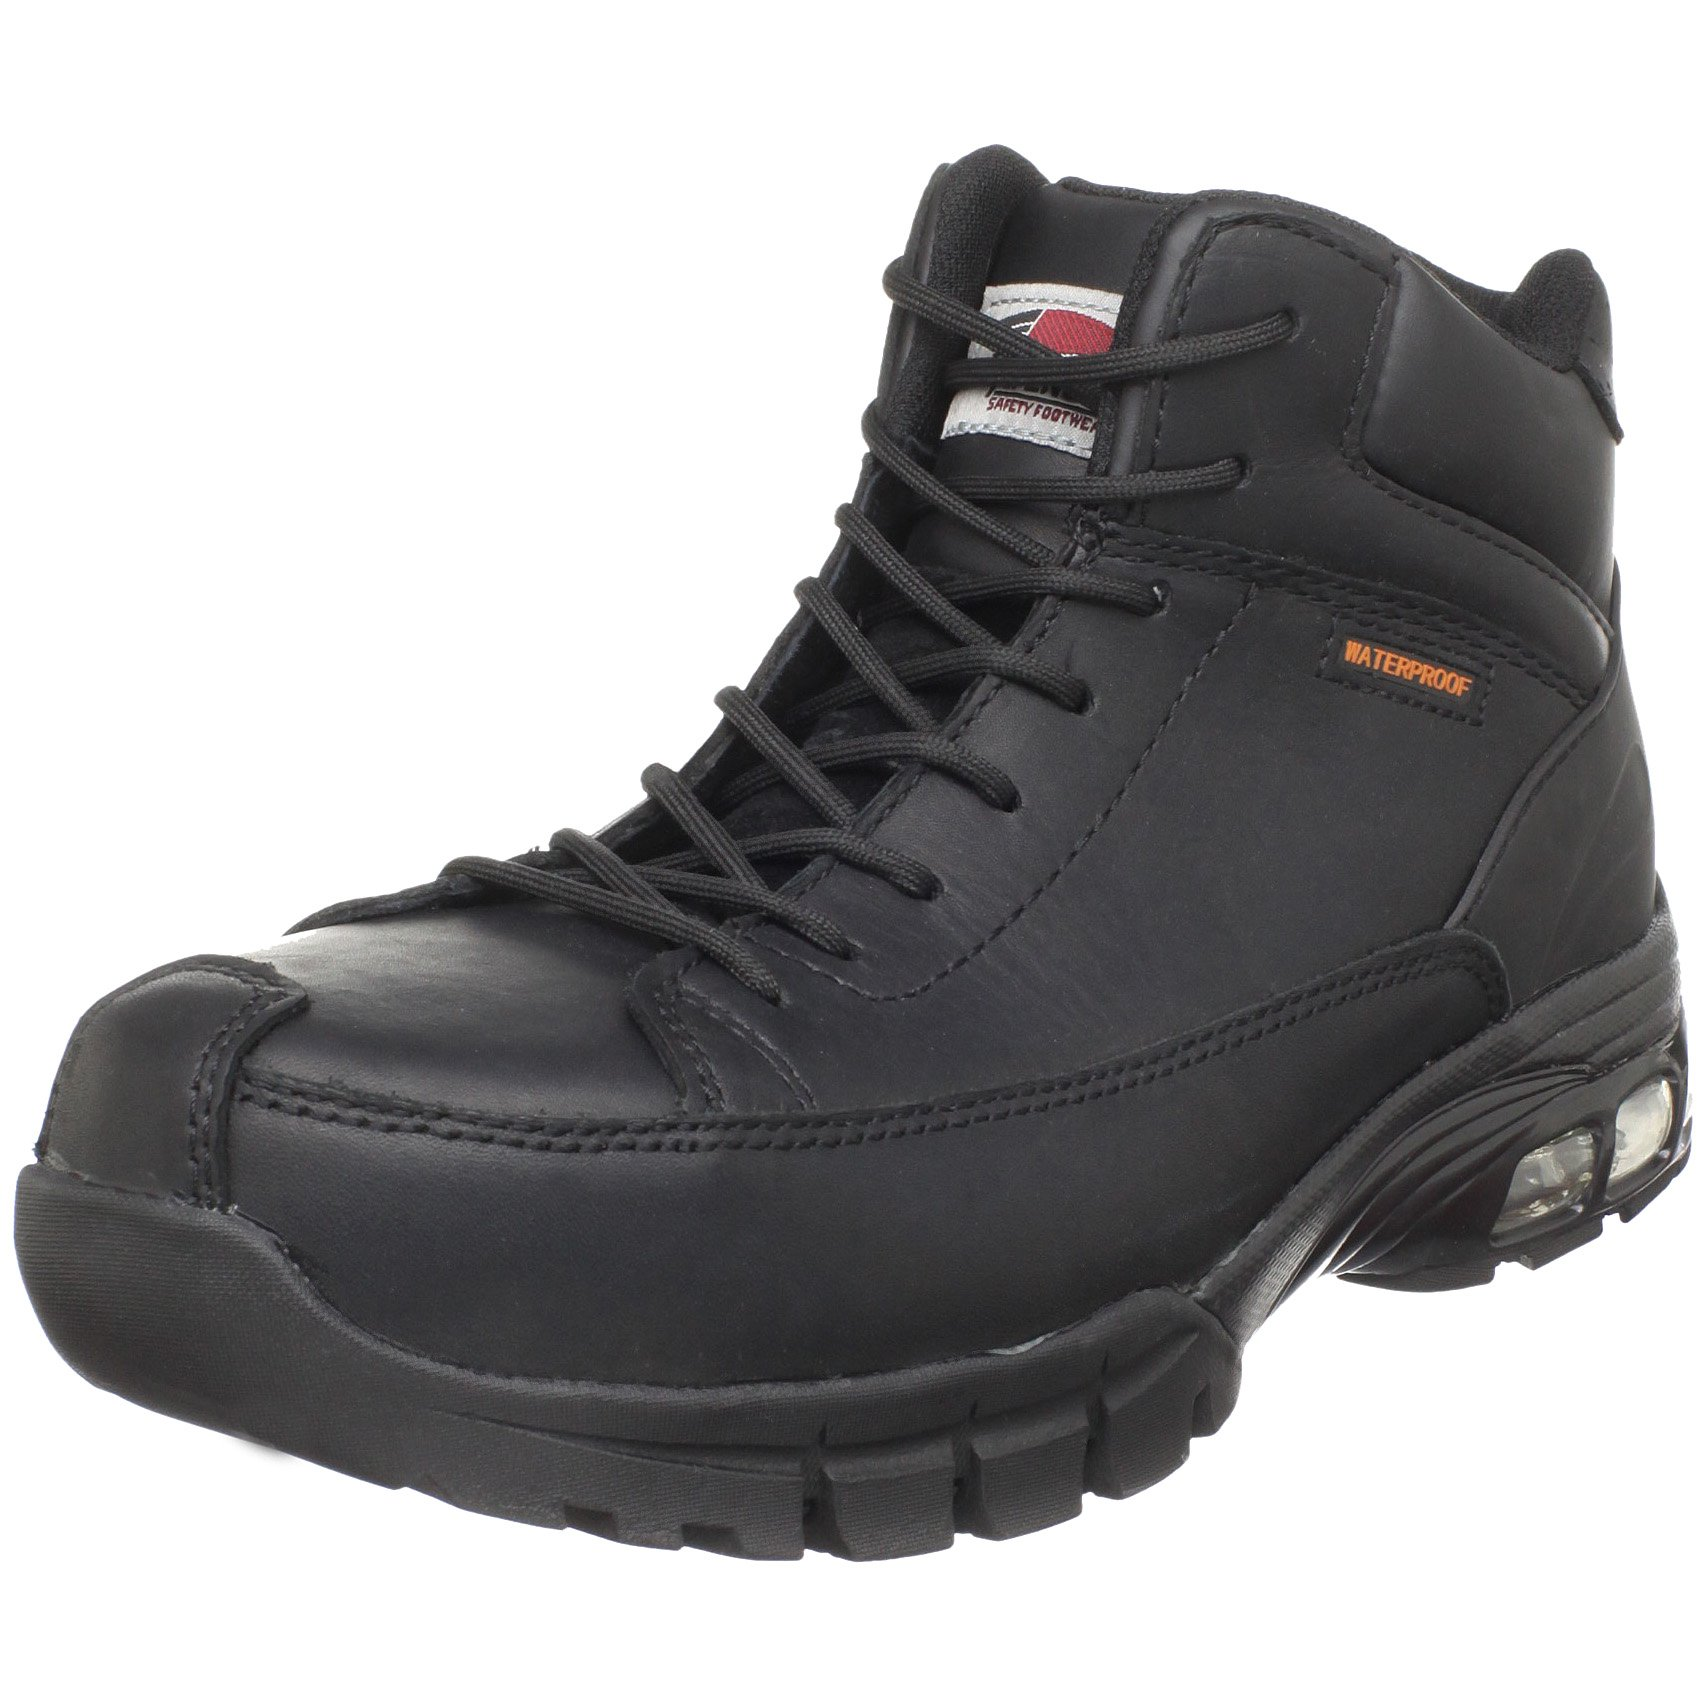 Avenger 7248 Waterproof Comp Toe No Exposed Metal EH Boot with ABS Cushioning,Black,8 M US